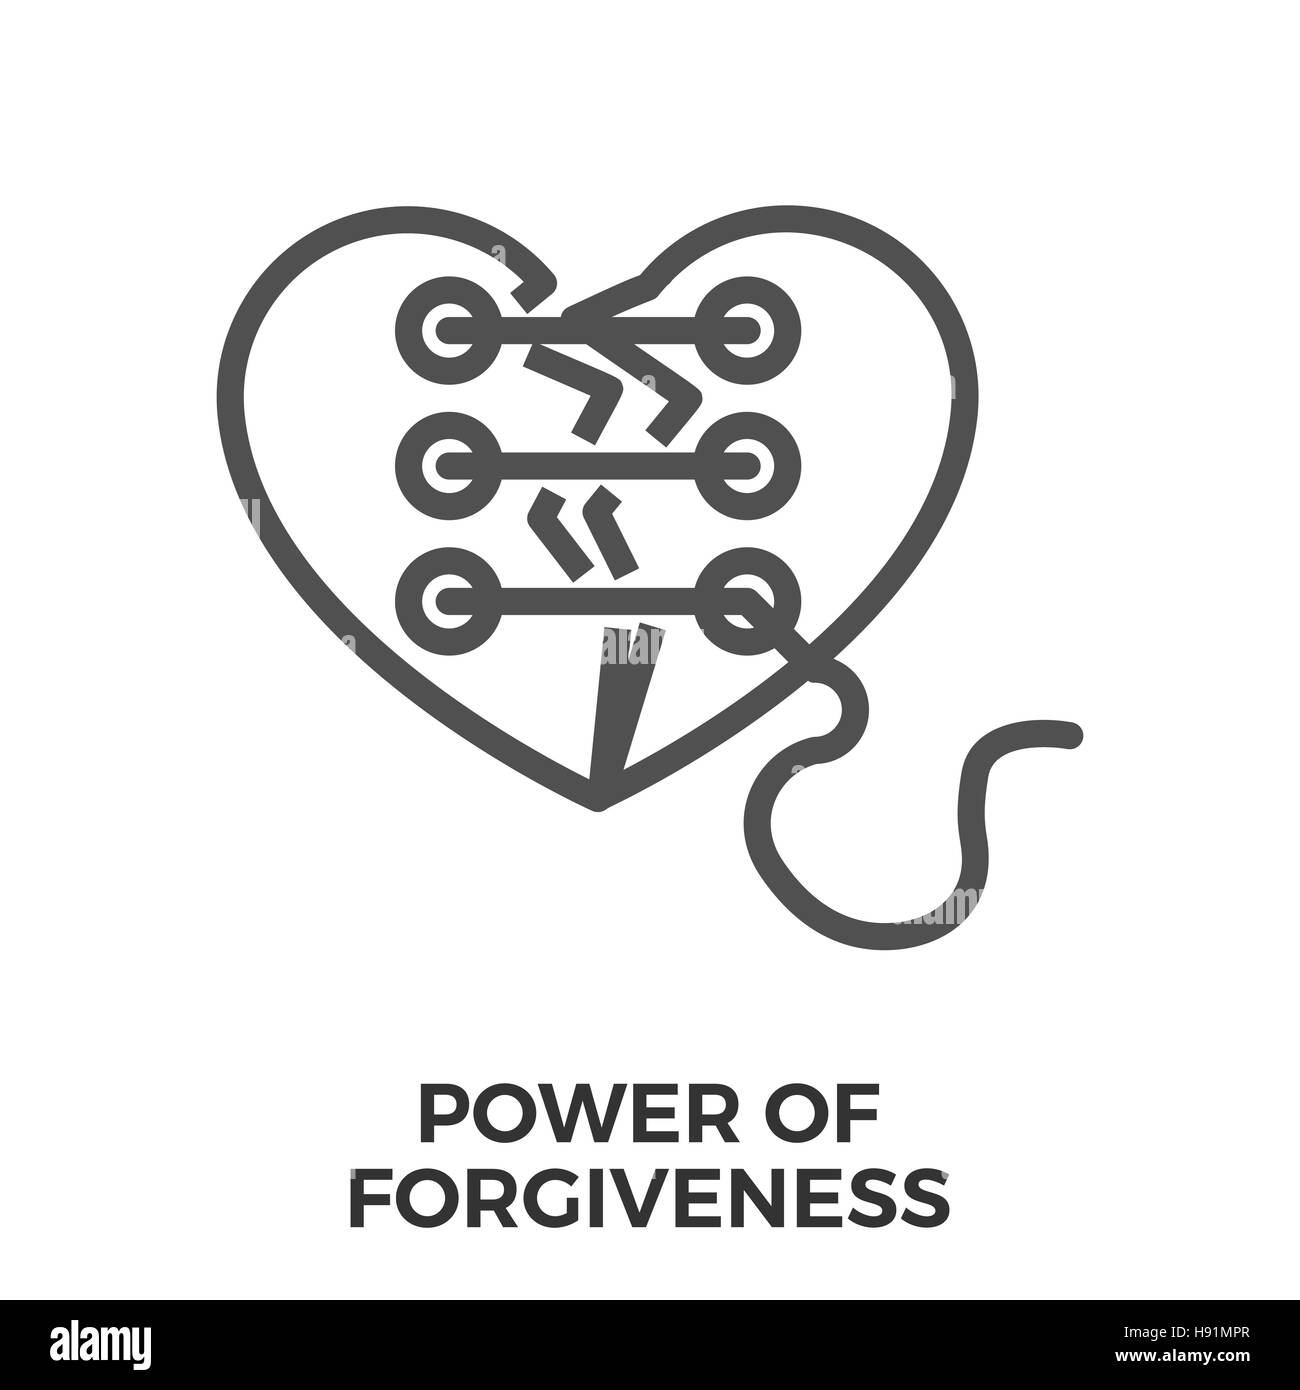 Power of Forgiveness Thin Line Vector Icon Isolated on the White Background. - Stock Image